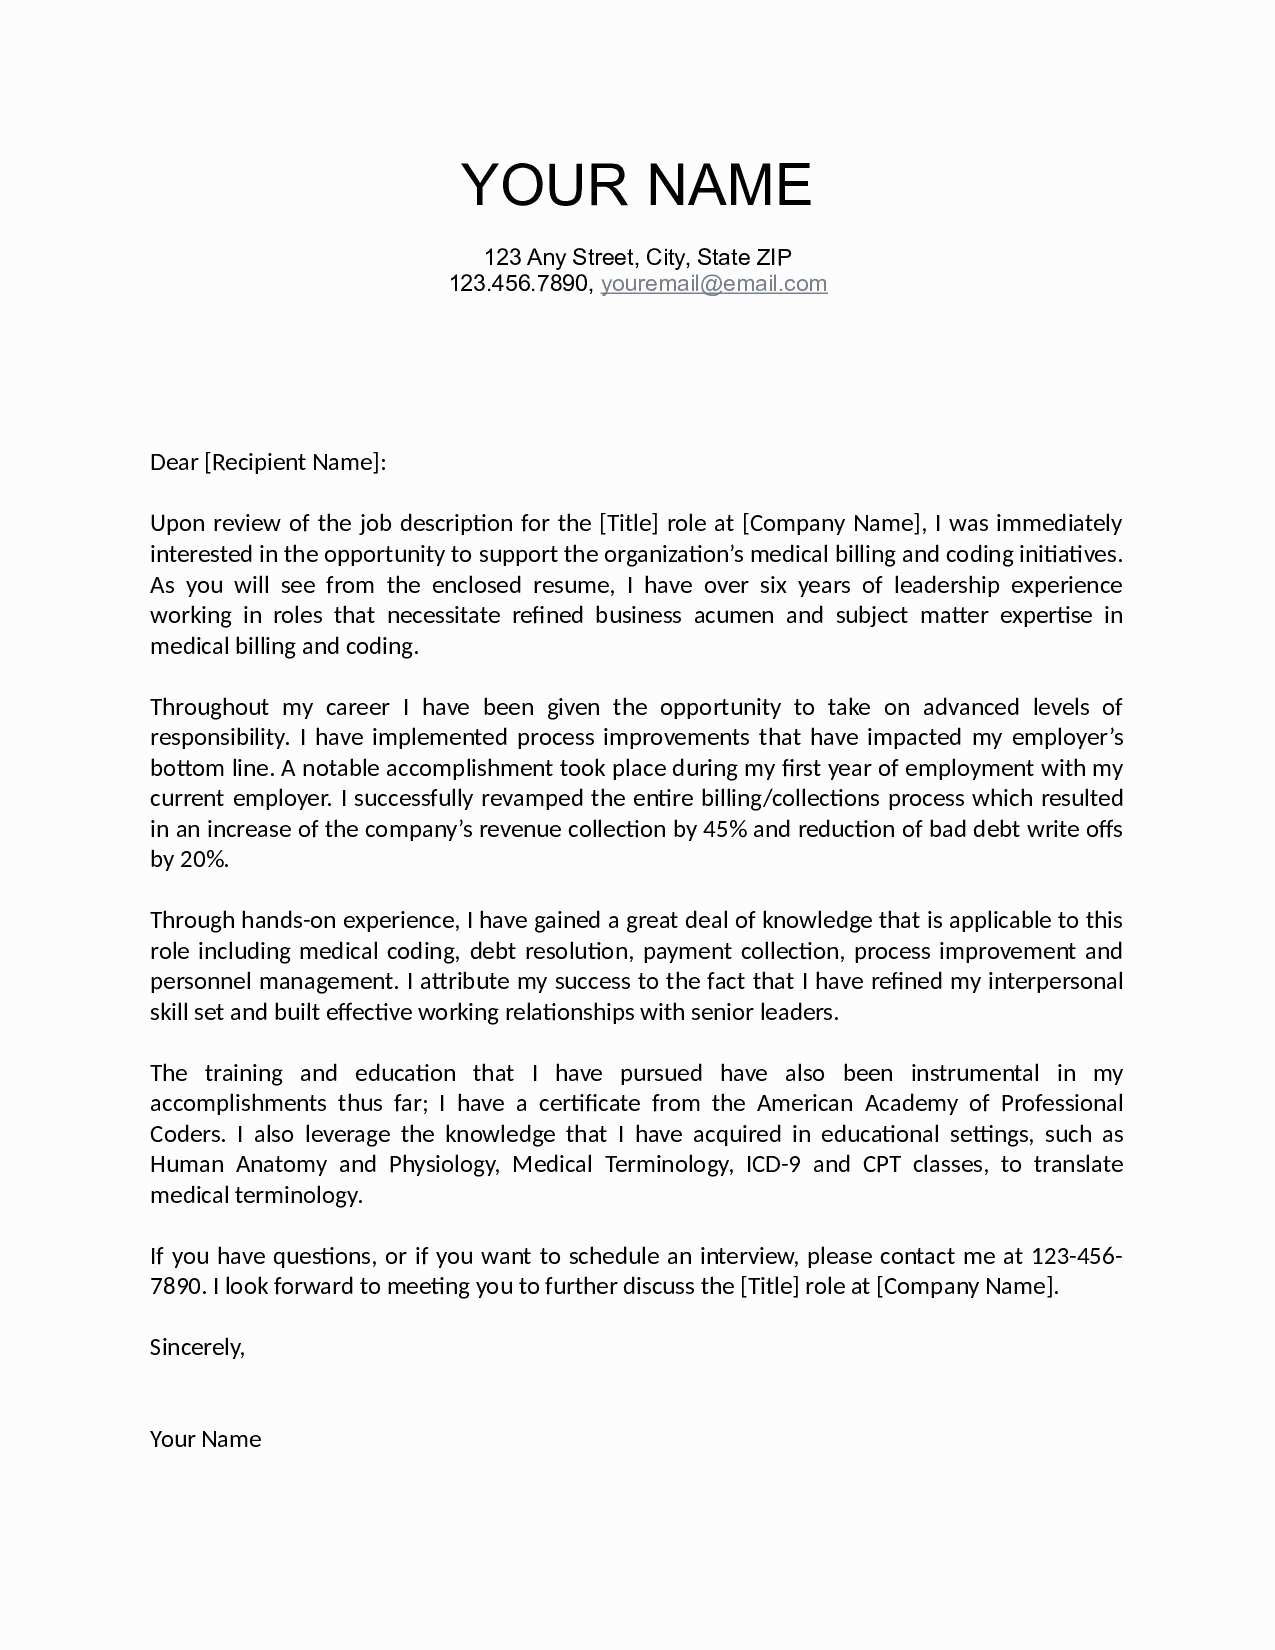 Professional Letter Heading Template - formal Letter Heading Beautiful Job Fer Letter Template Us Copy Od